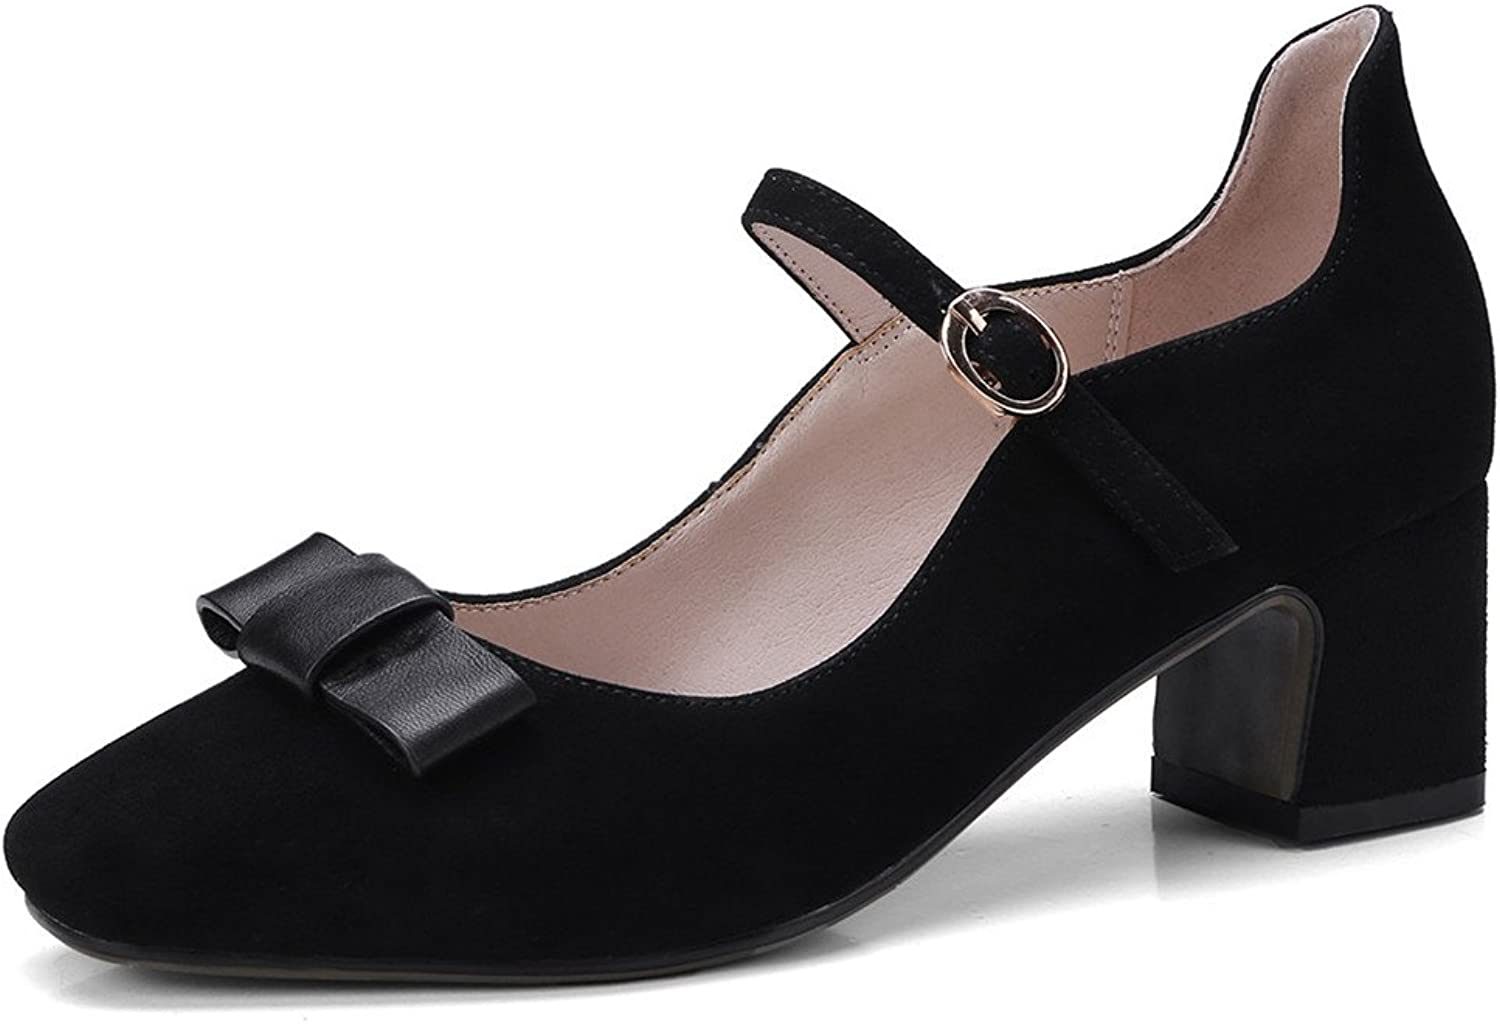 Nine Seven Suede Leather Women's Square Toe Block Heel Bowknot Mary Jane Handmade Pumps